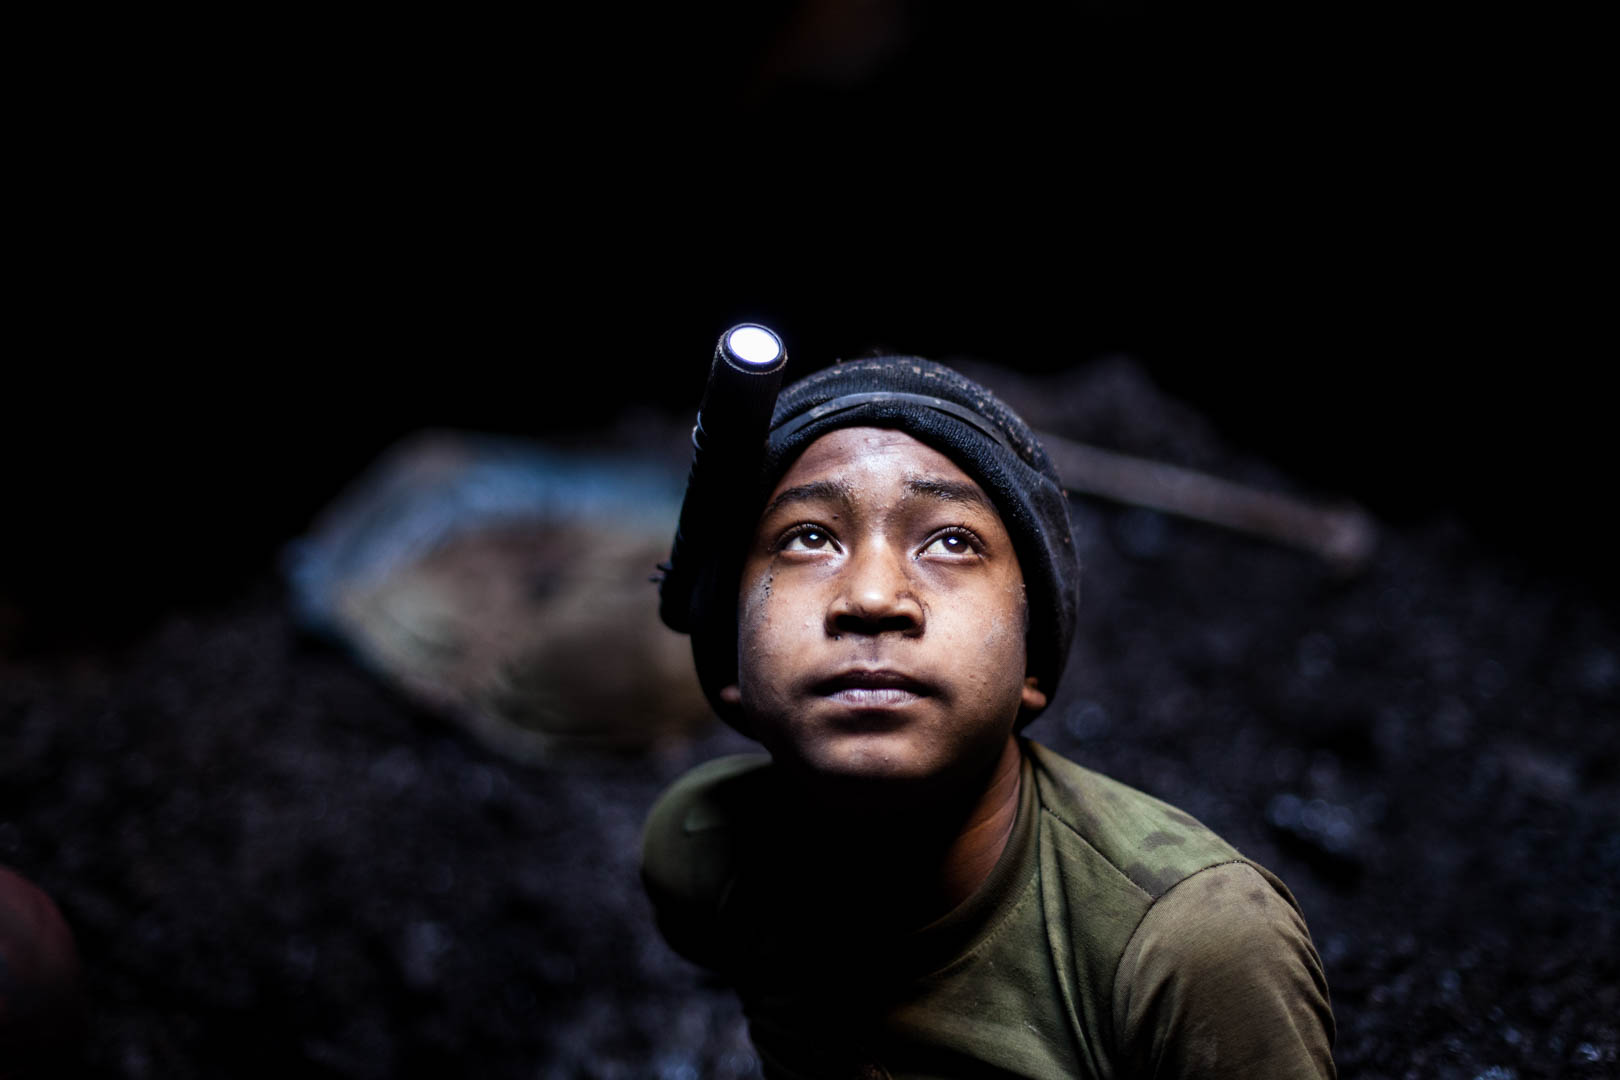 Ashok, an eight year old boy from India, works in the mines since he is five years old. He starts to dig for coal at five in the morning and finishes by 3PM. He says he prefers making money over going to school.